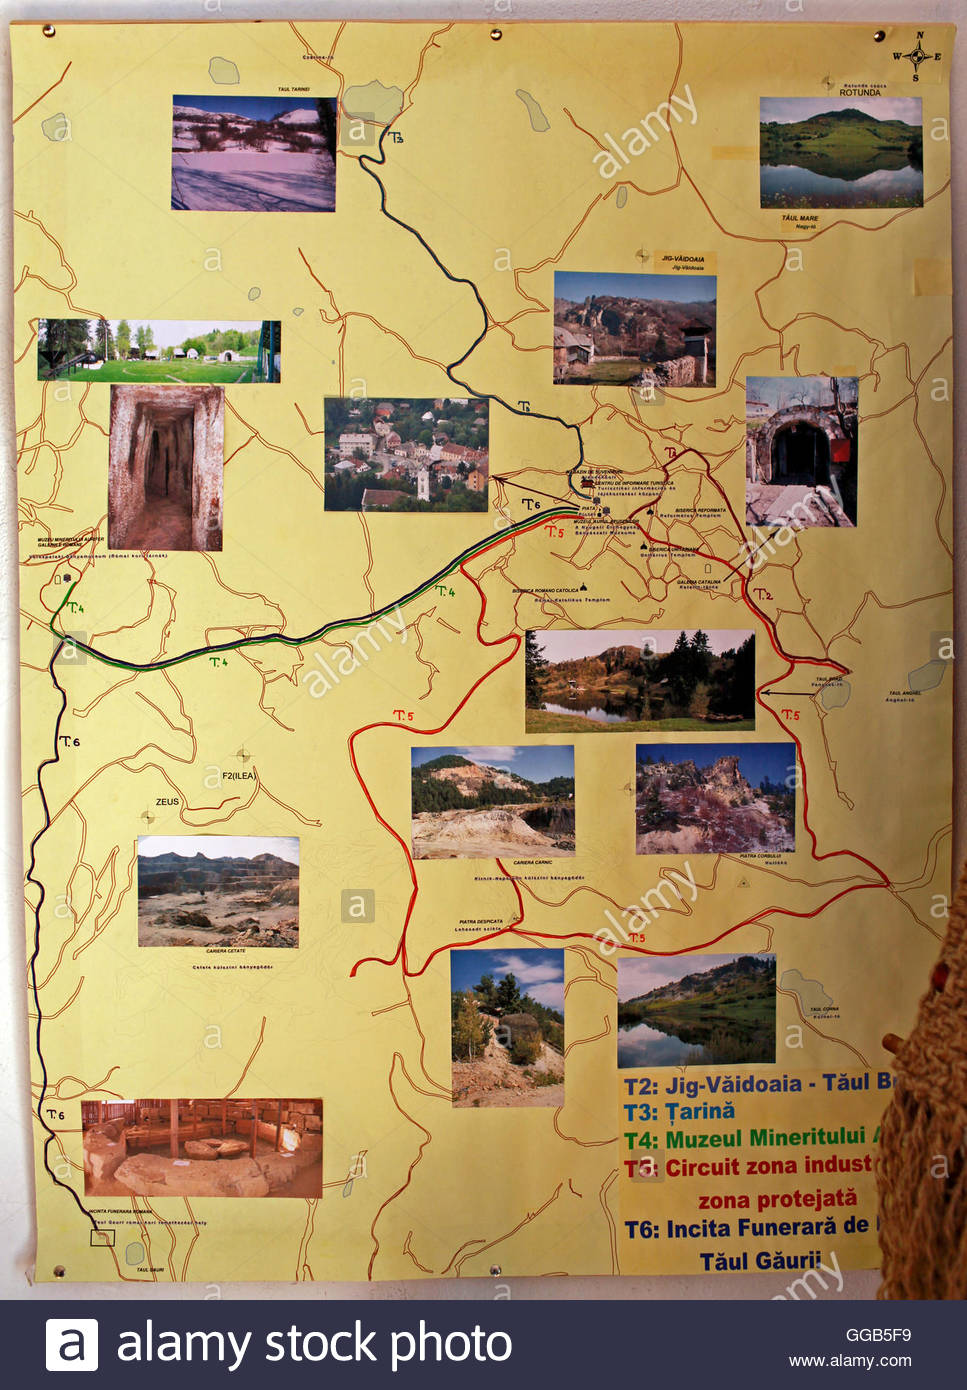 A Map Showing Tourist Attractions Around Rosia Montana Village – Montana Tourist Attractions Map